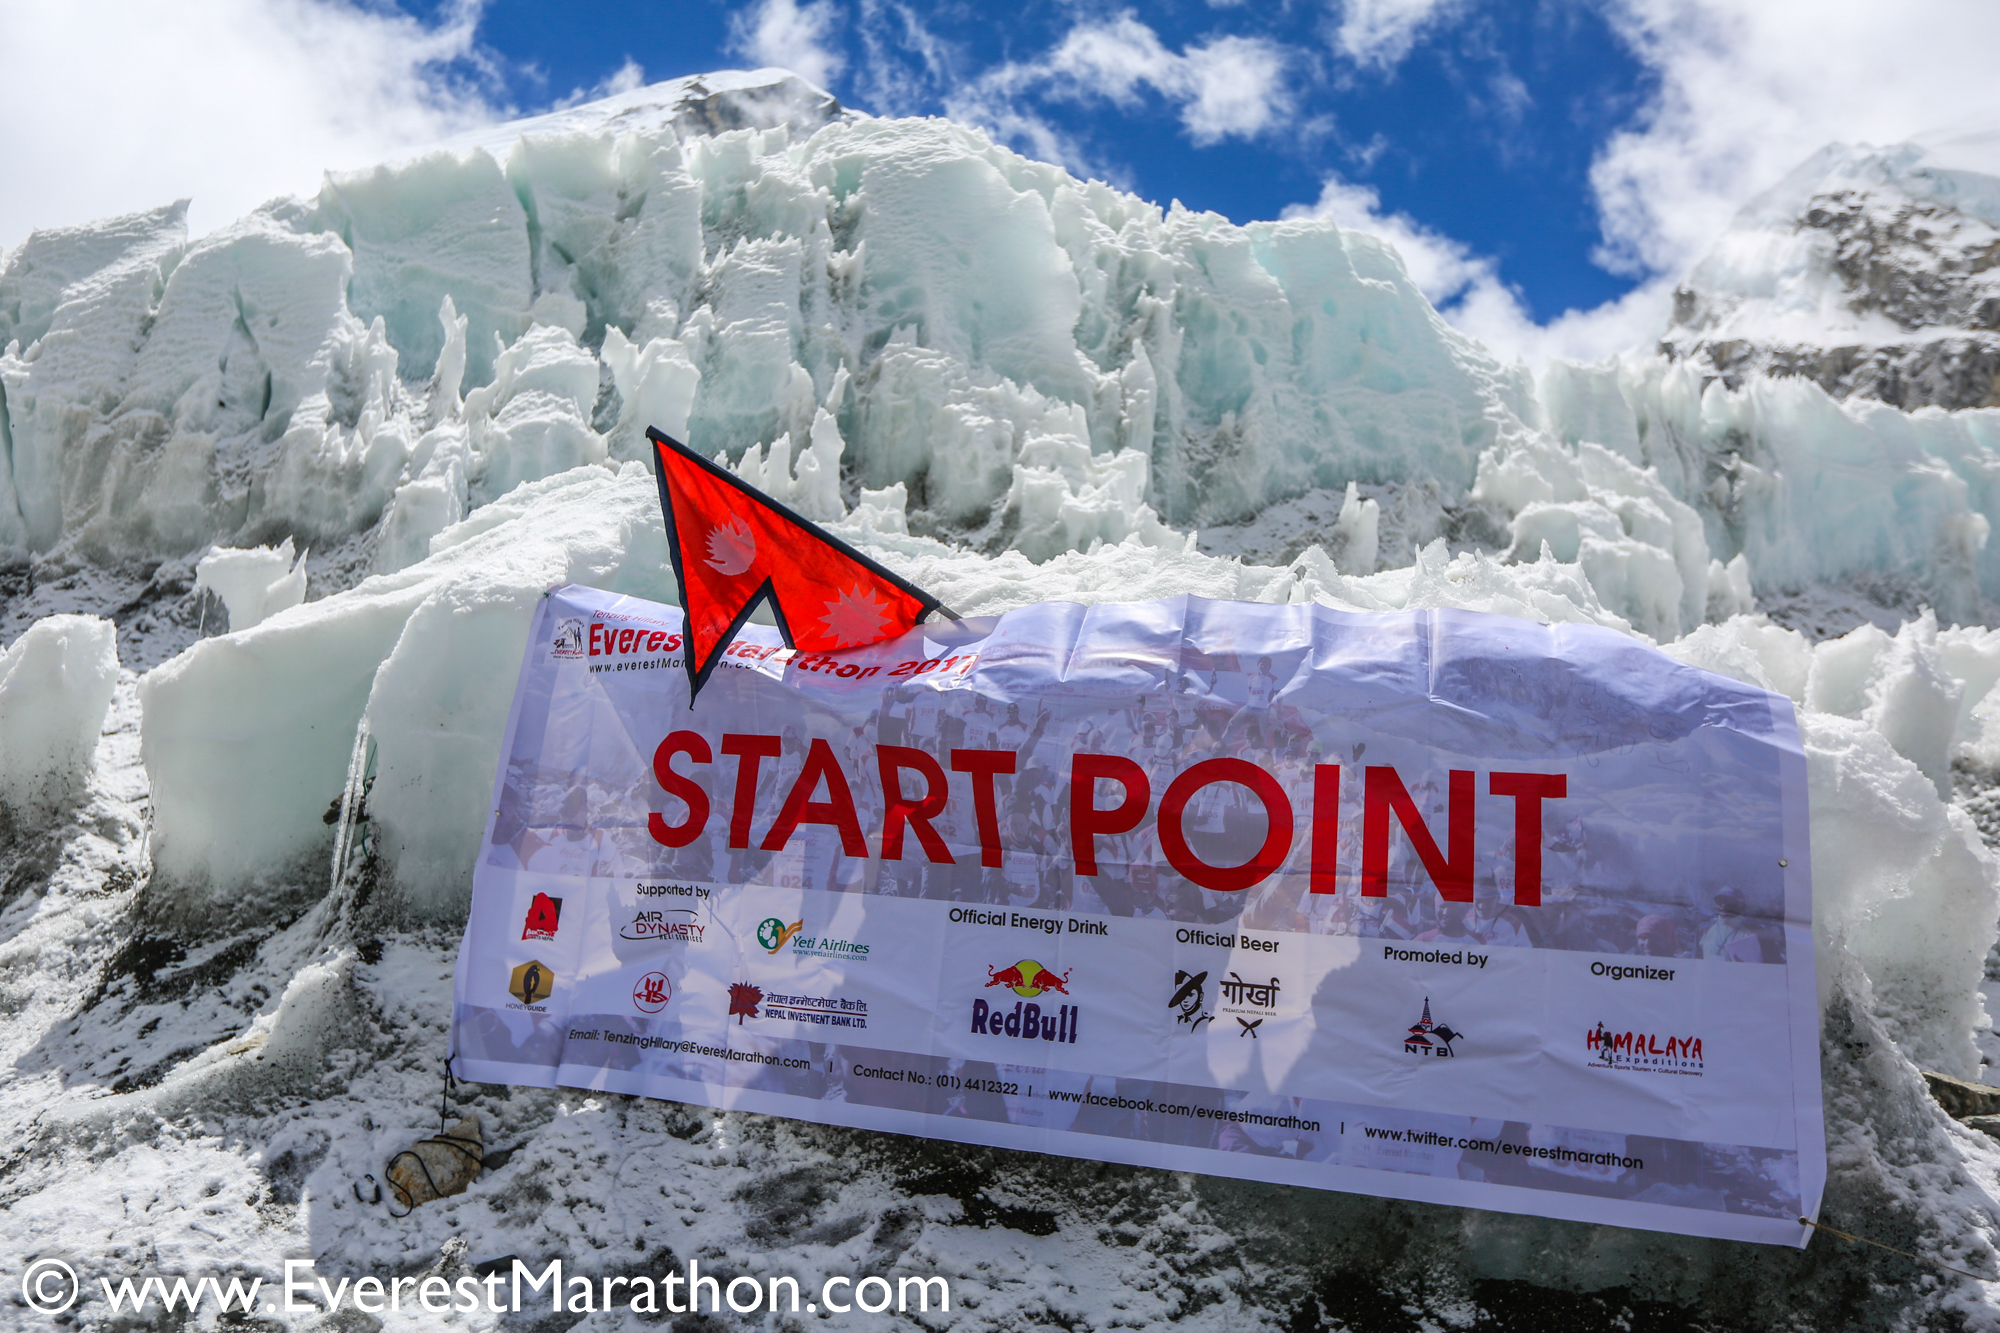 Am Start des Everest Marathons